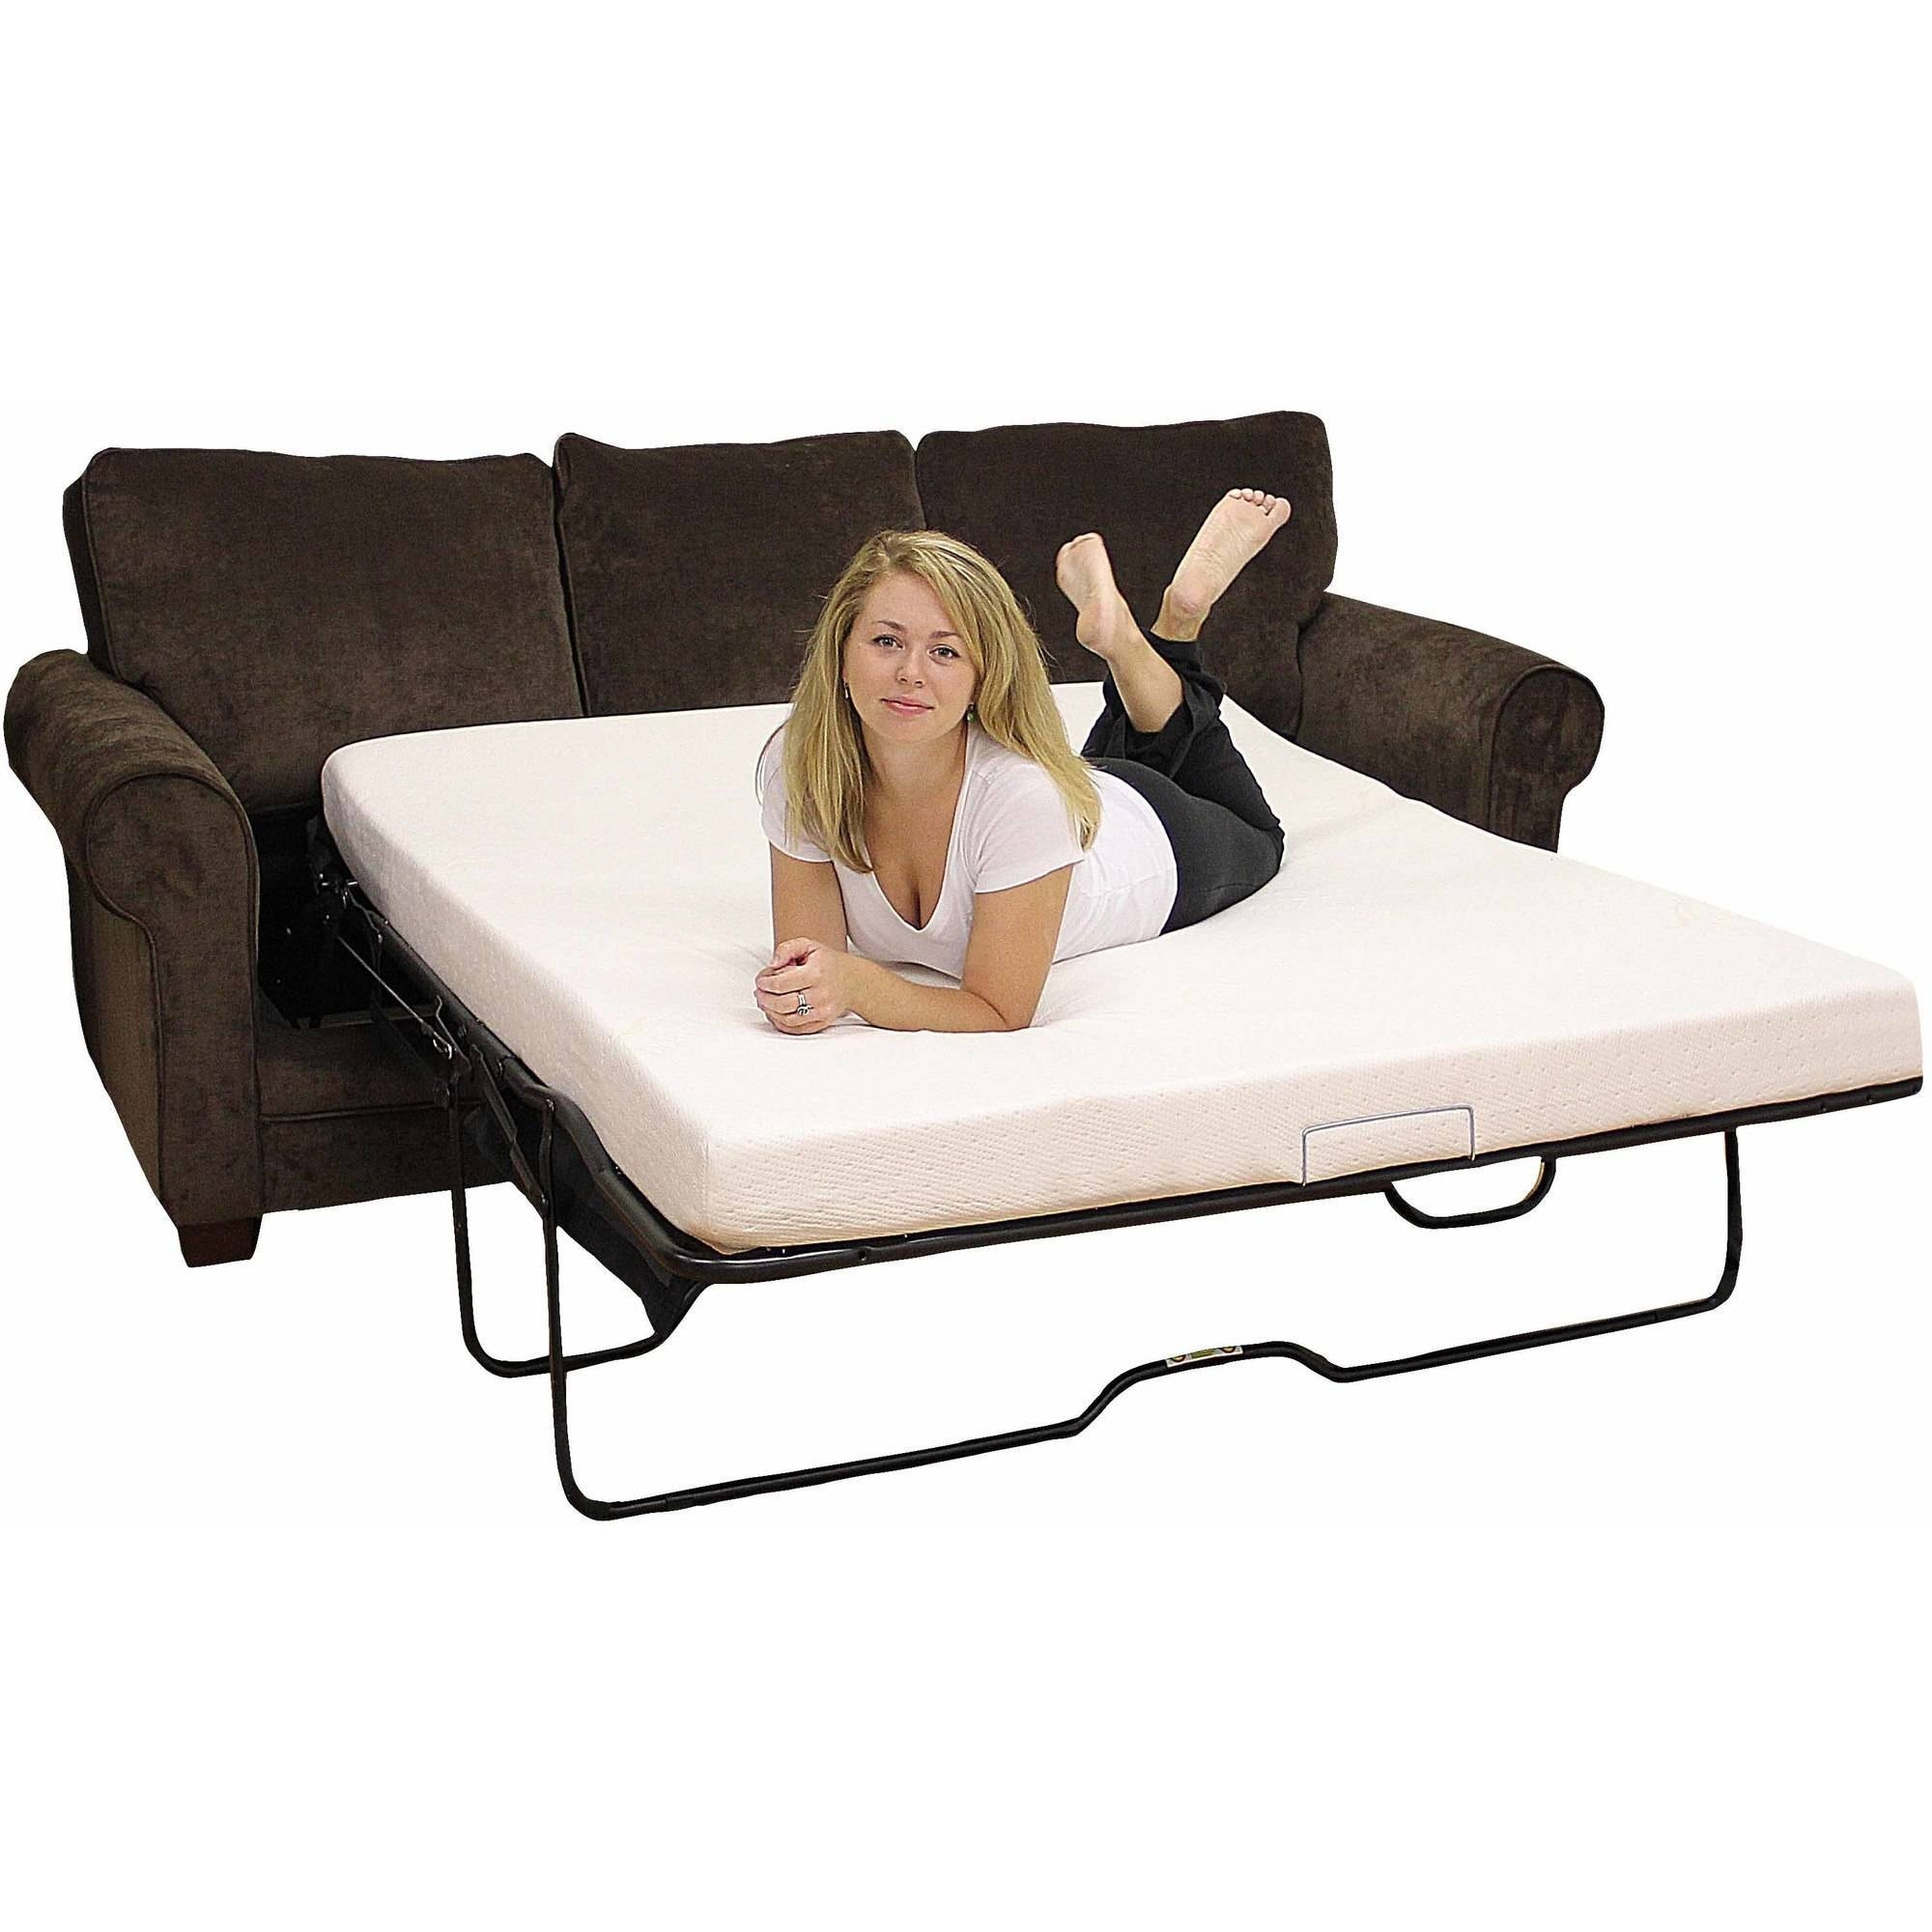 "Modern Sleep Memory Foam 4.5"" Sofa Bed Mattress, Multiple Sizes within 70 Sleeper Sofa (Image 27 of 30)"